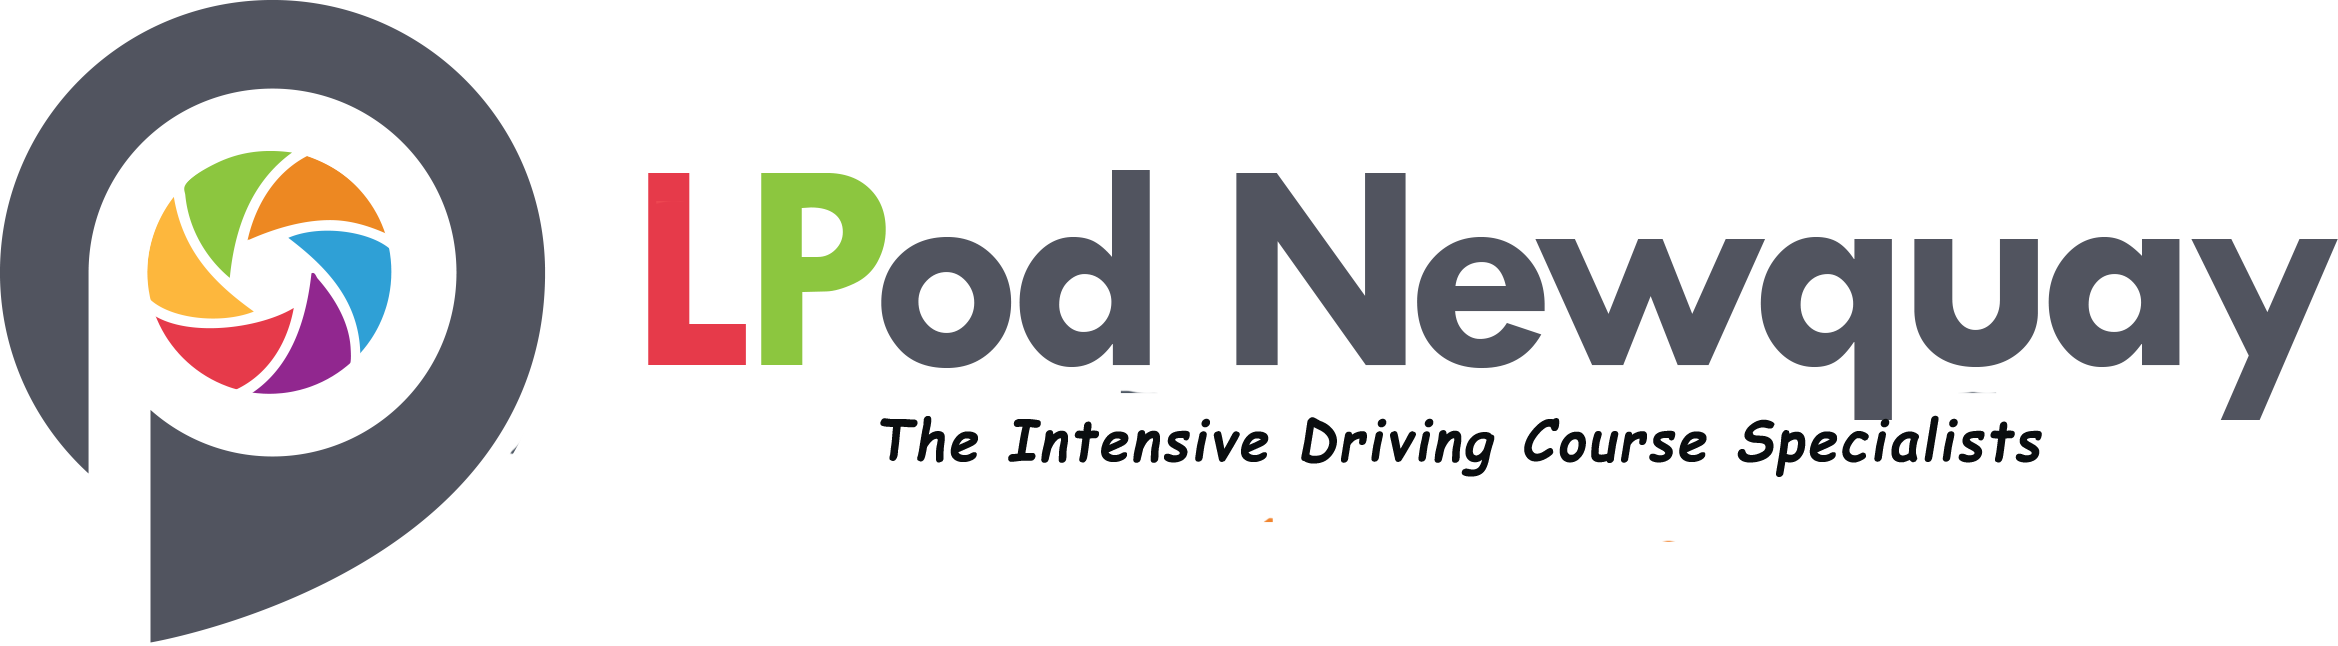 intensive driving courses newquay, intensive driving lessons newquay, intensive driving school newquay